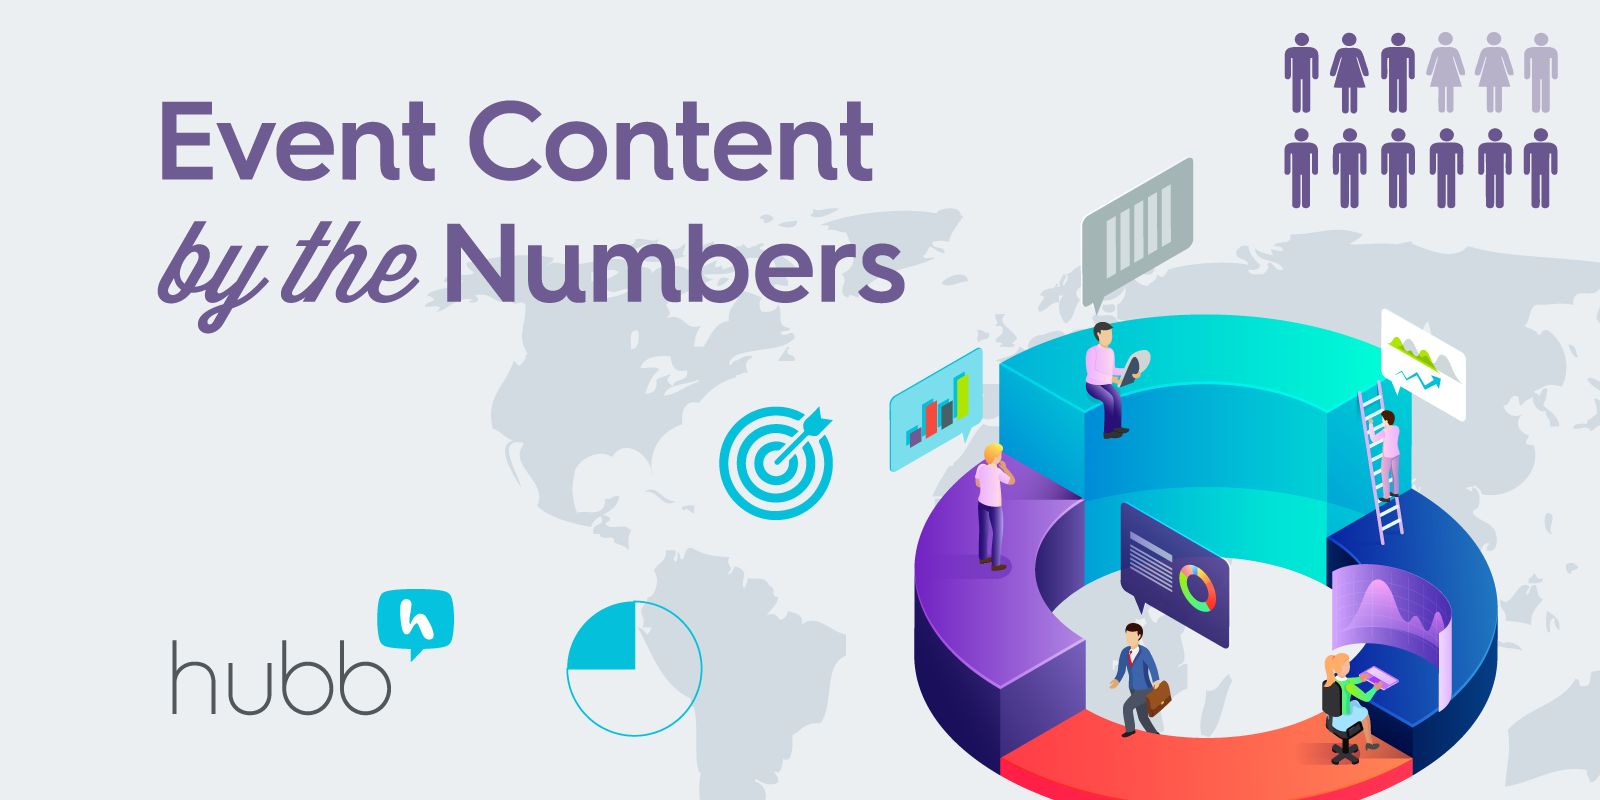 [Infographic] Event content by the numbers